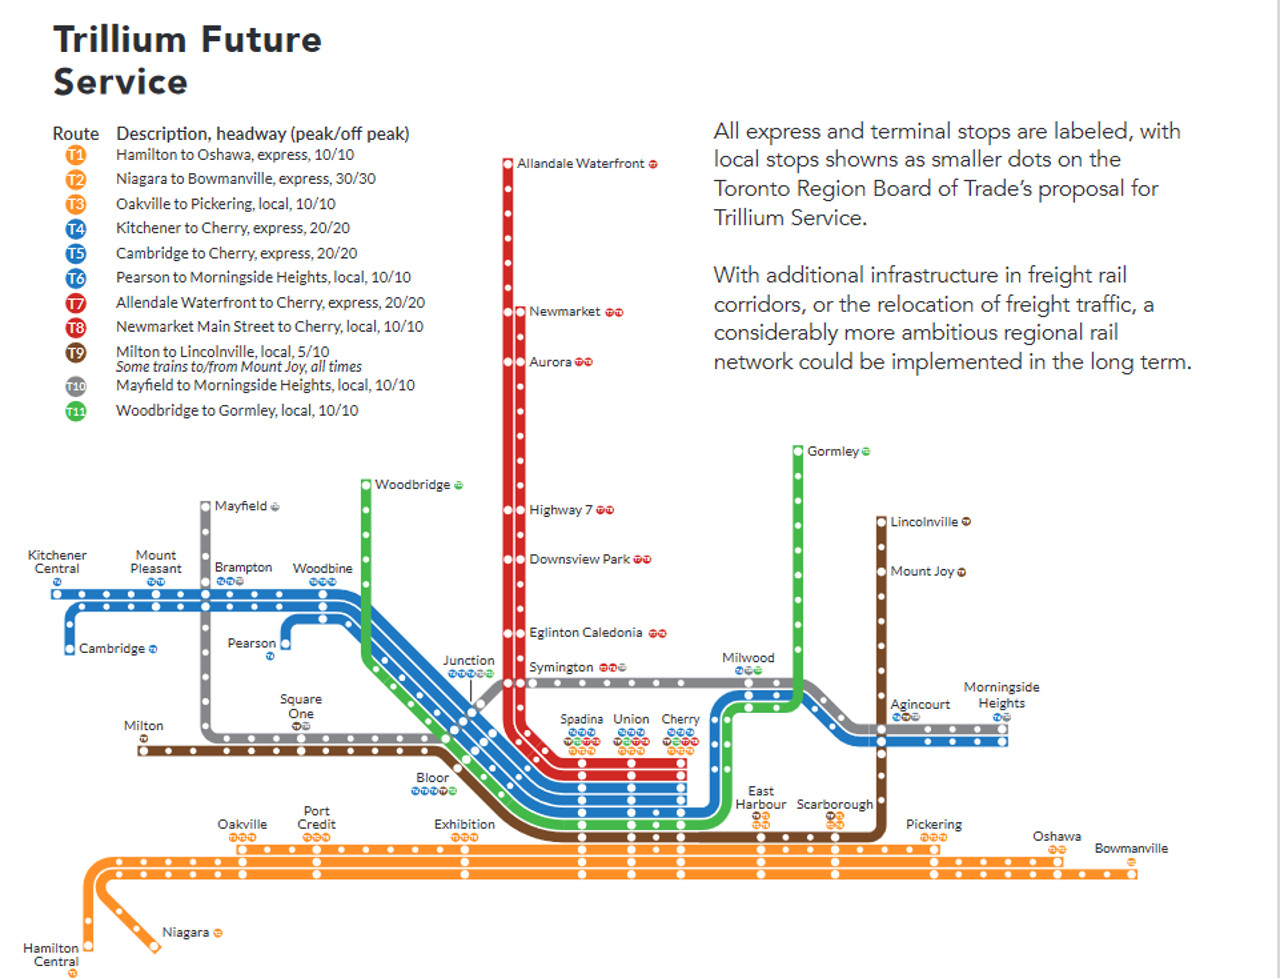 Map of a future, expanded Trillium Network